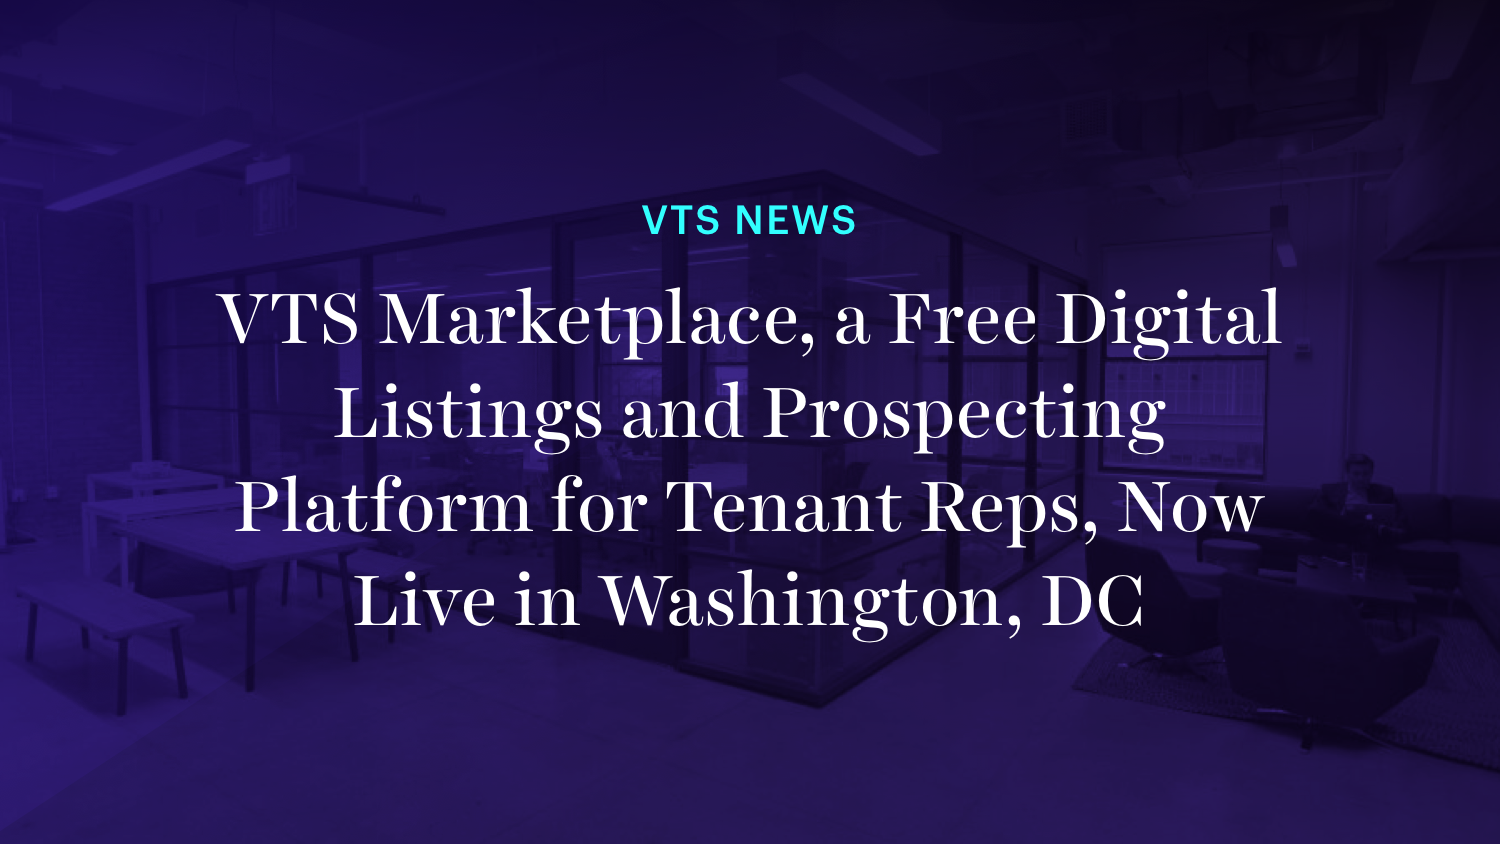 02.01.2021-VTS-Marketplace-a-Free-Digital-Listings-and-Prospecting-Platform-for-Tenant-Reps-Now-Live-in-Washington-DC